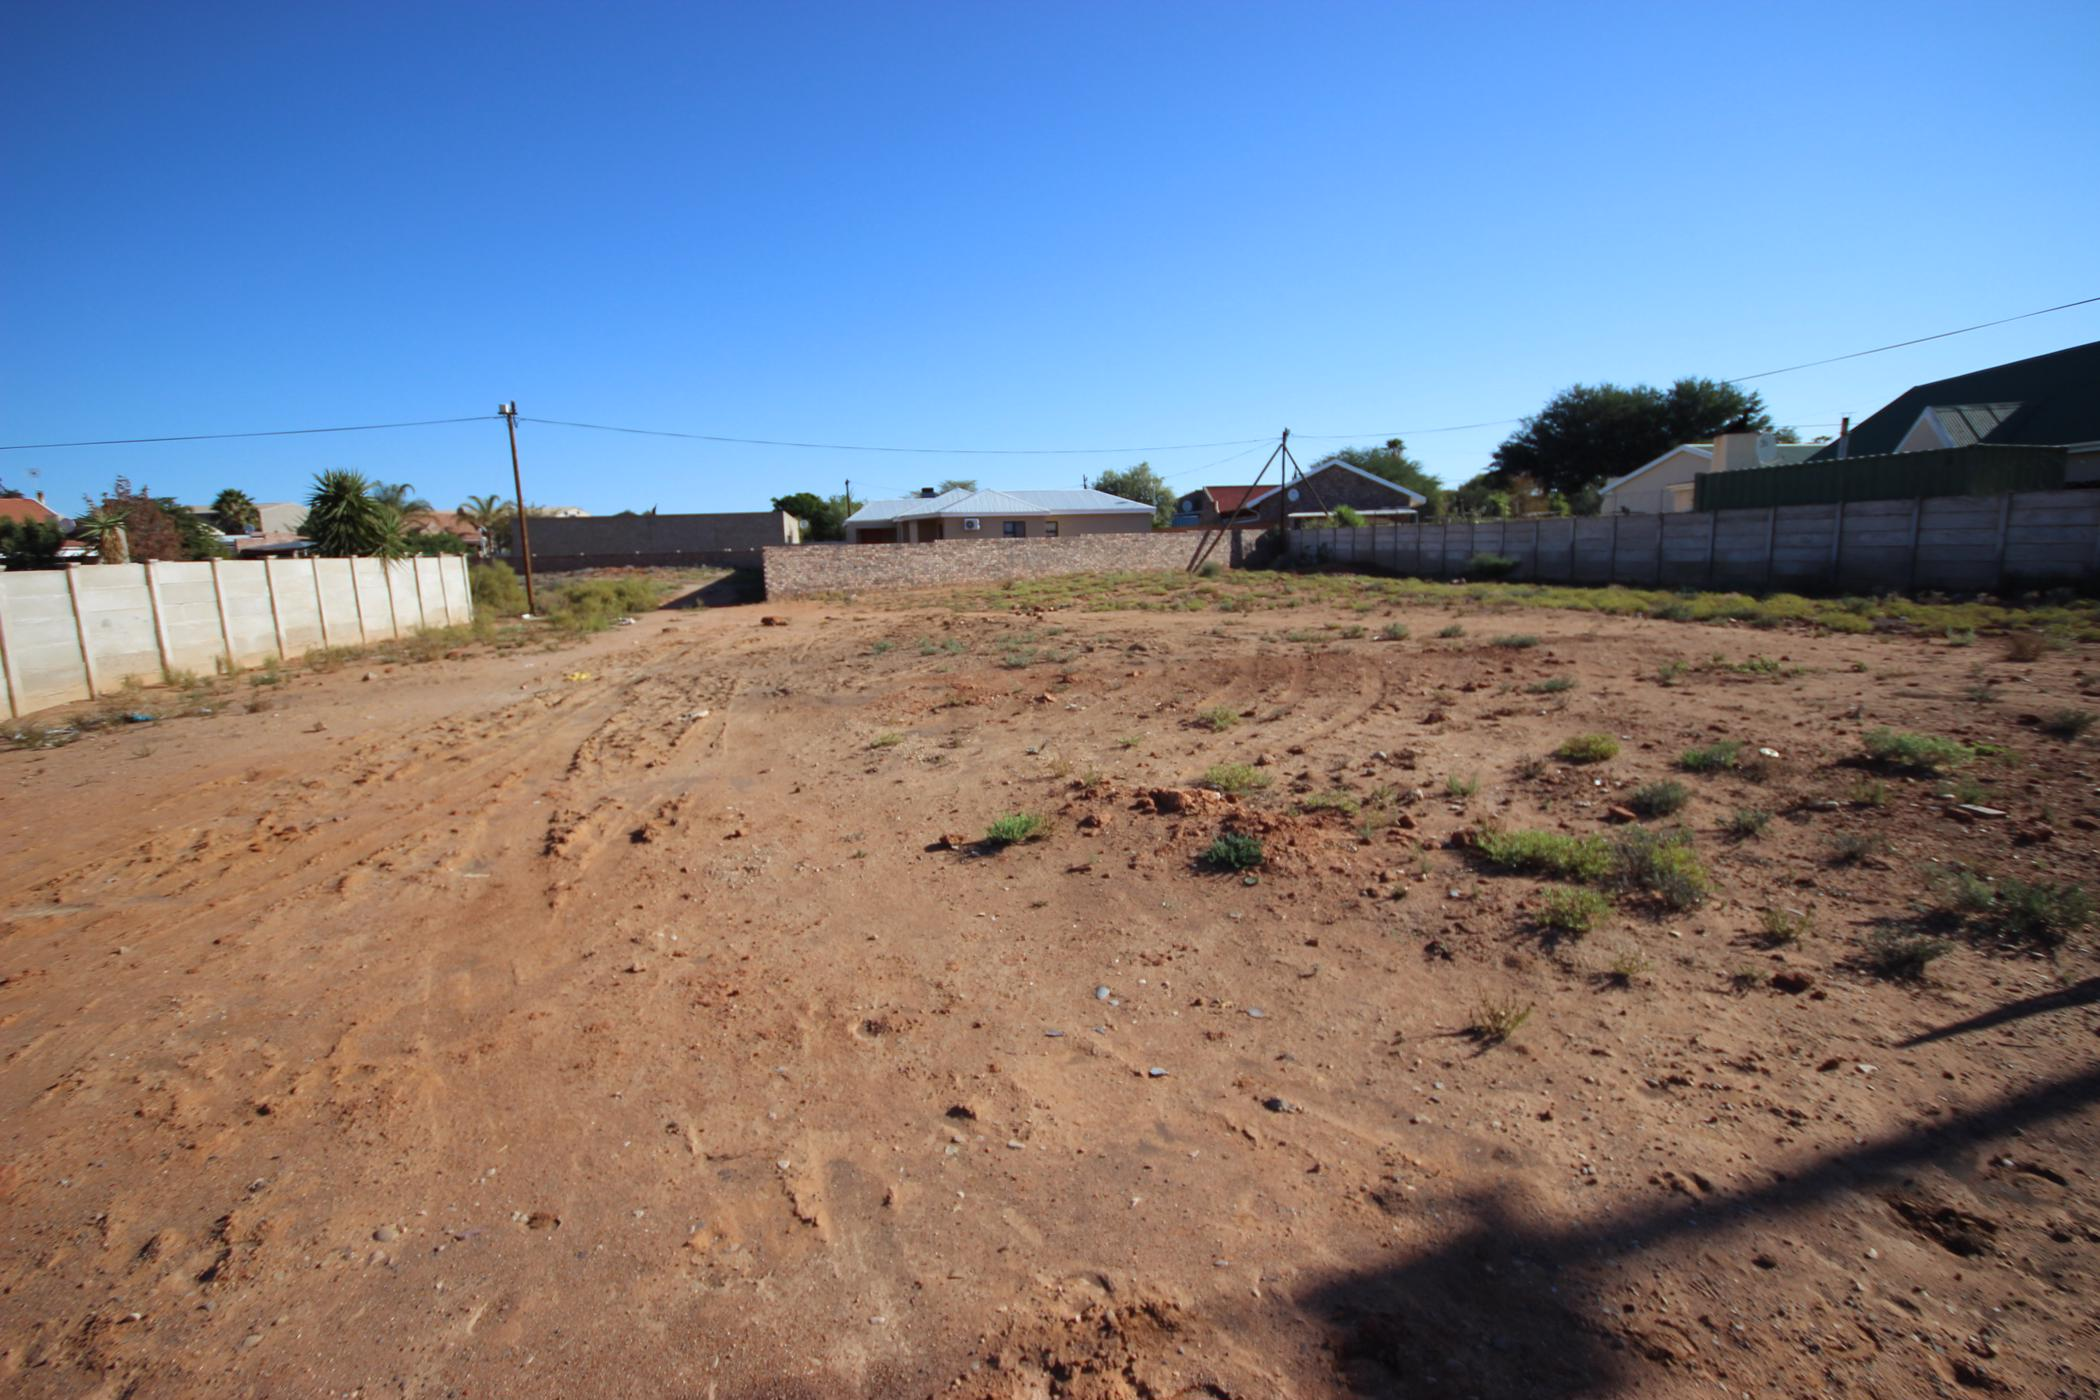 973 m² vacant land for sale in Oudtshoorn